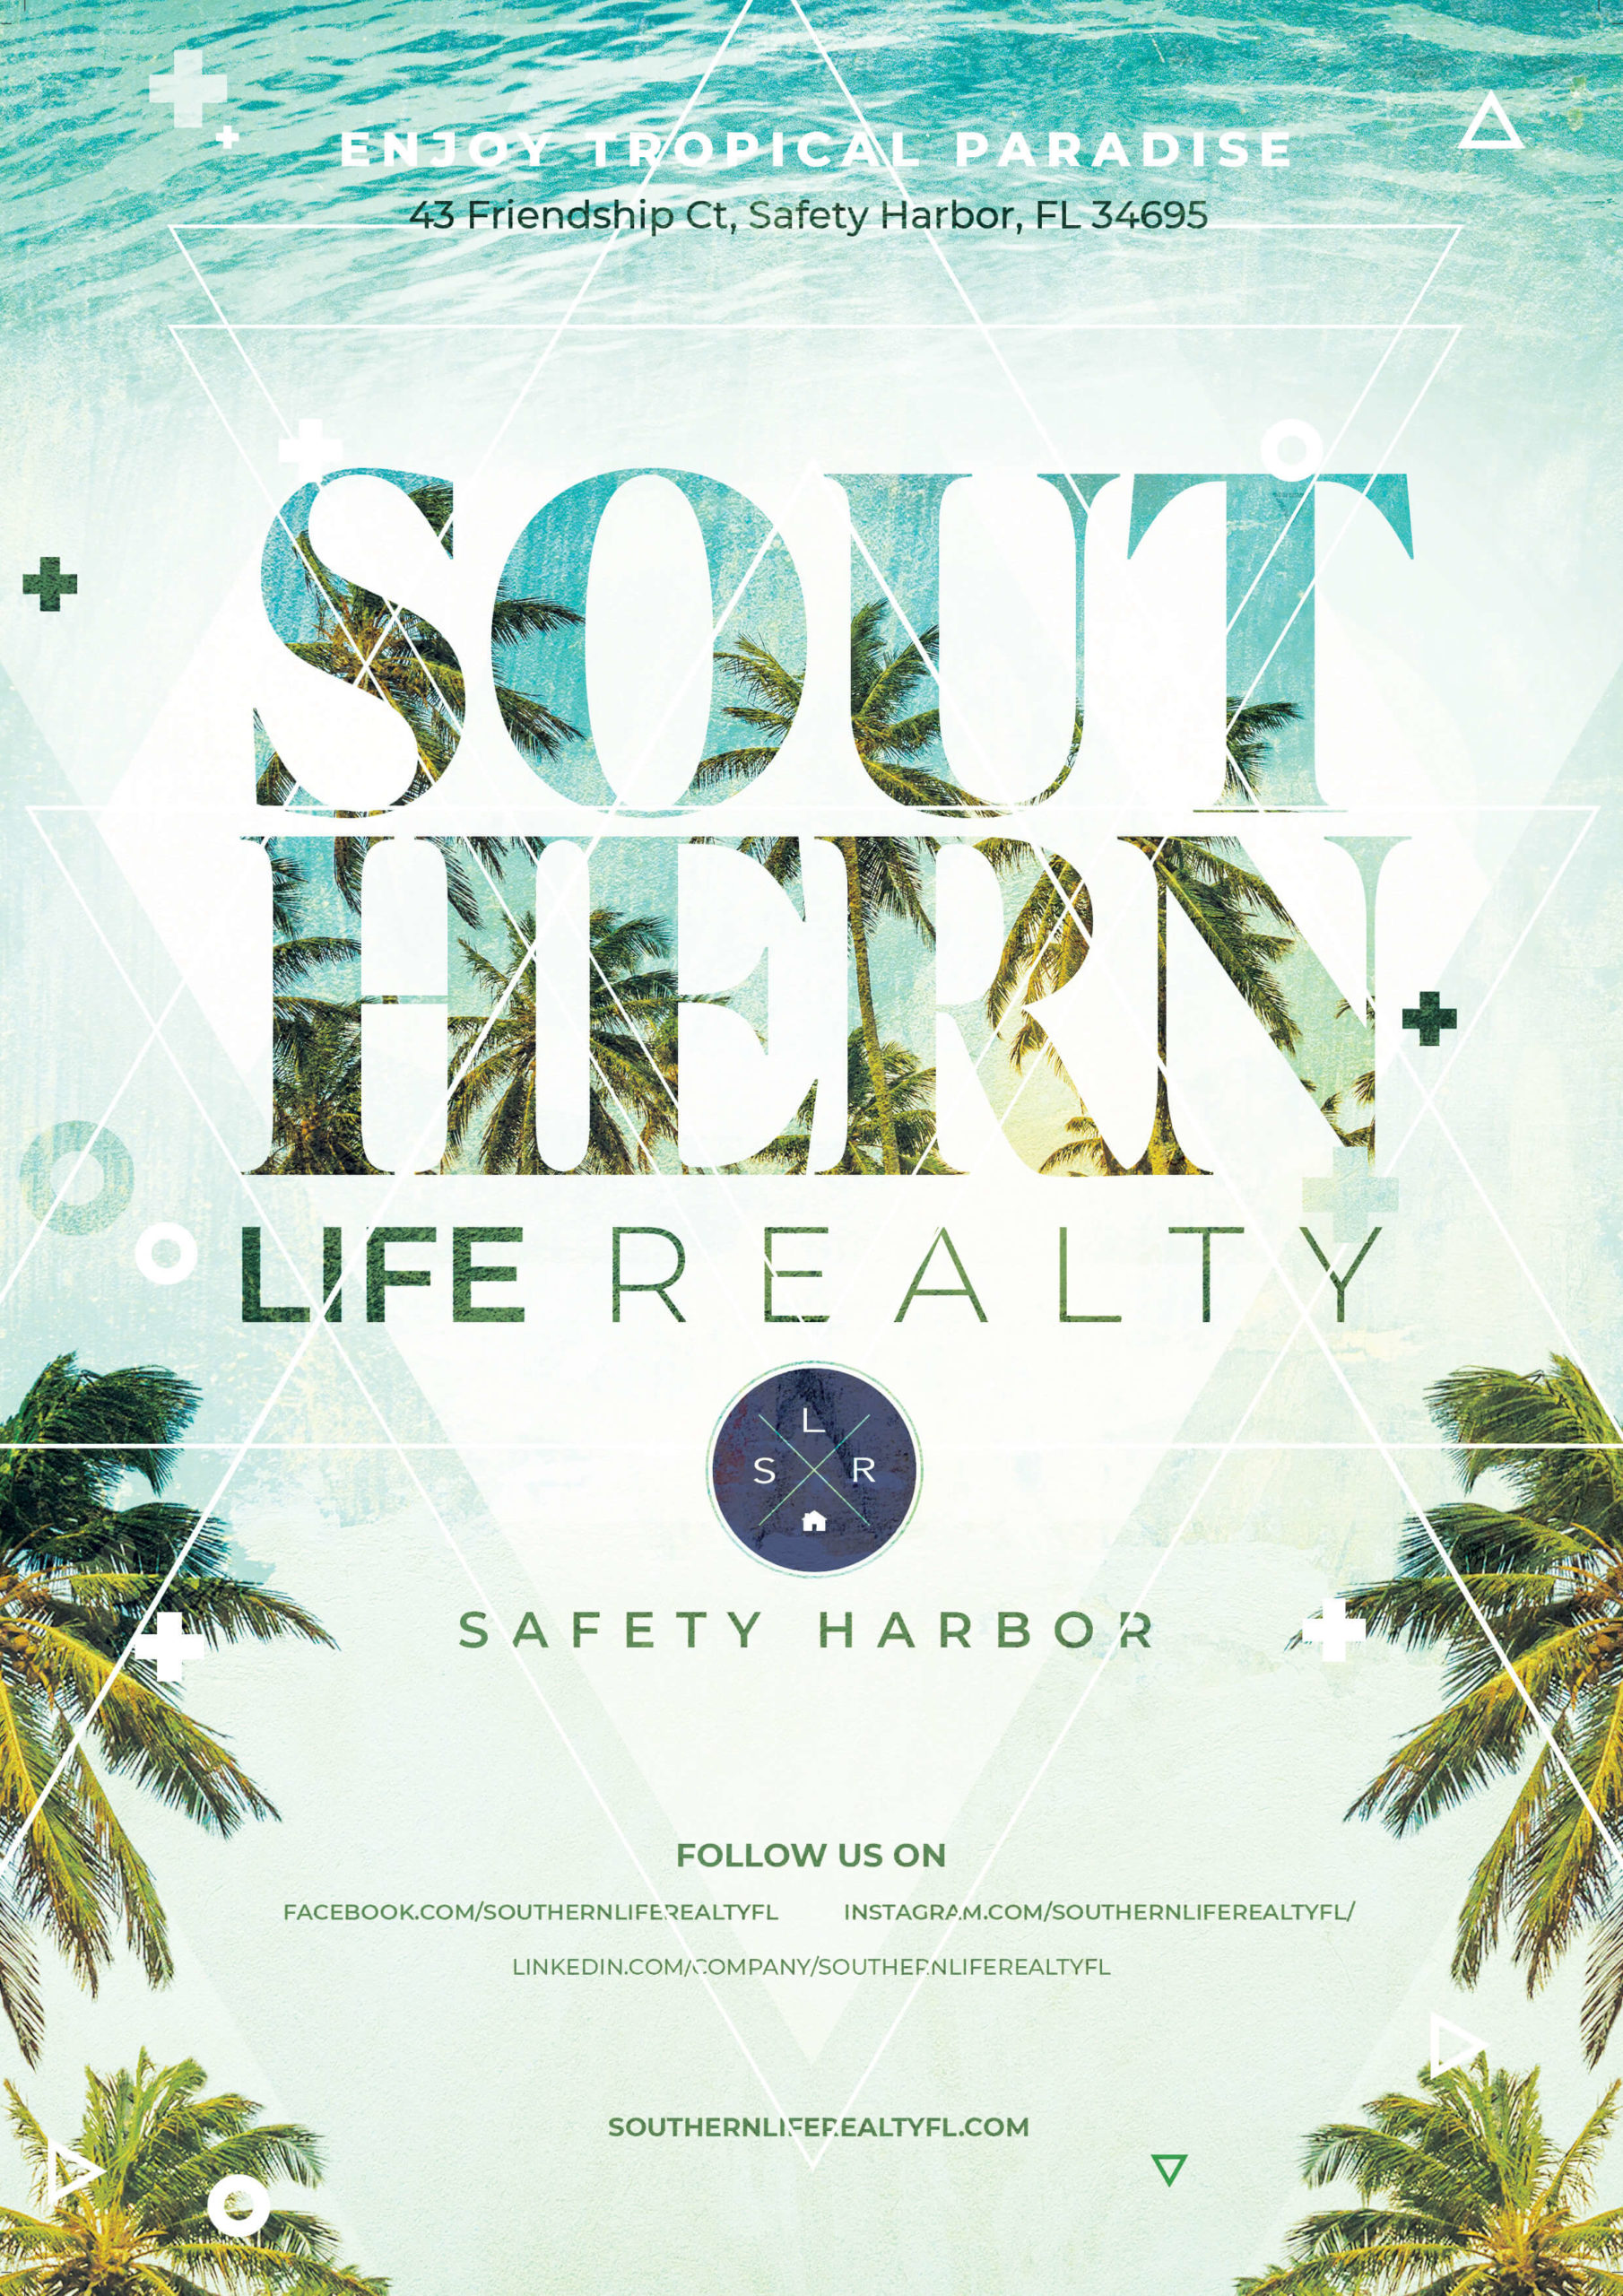 Southern life realty poster 01